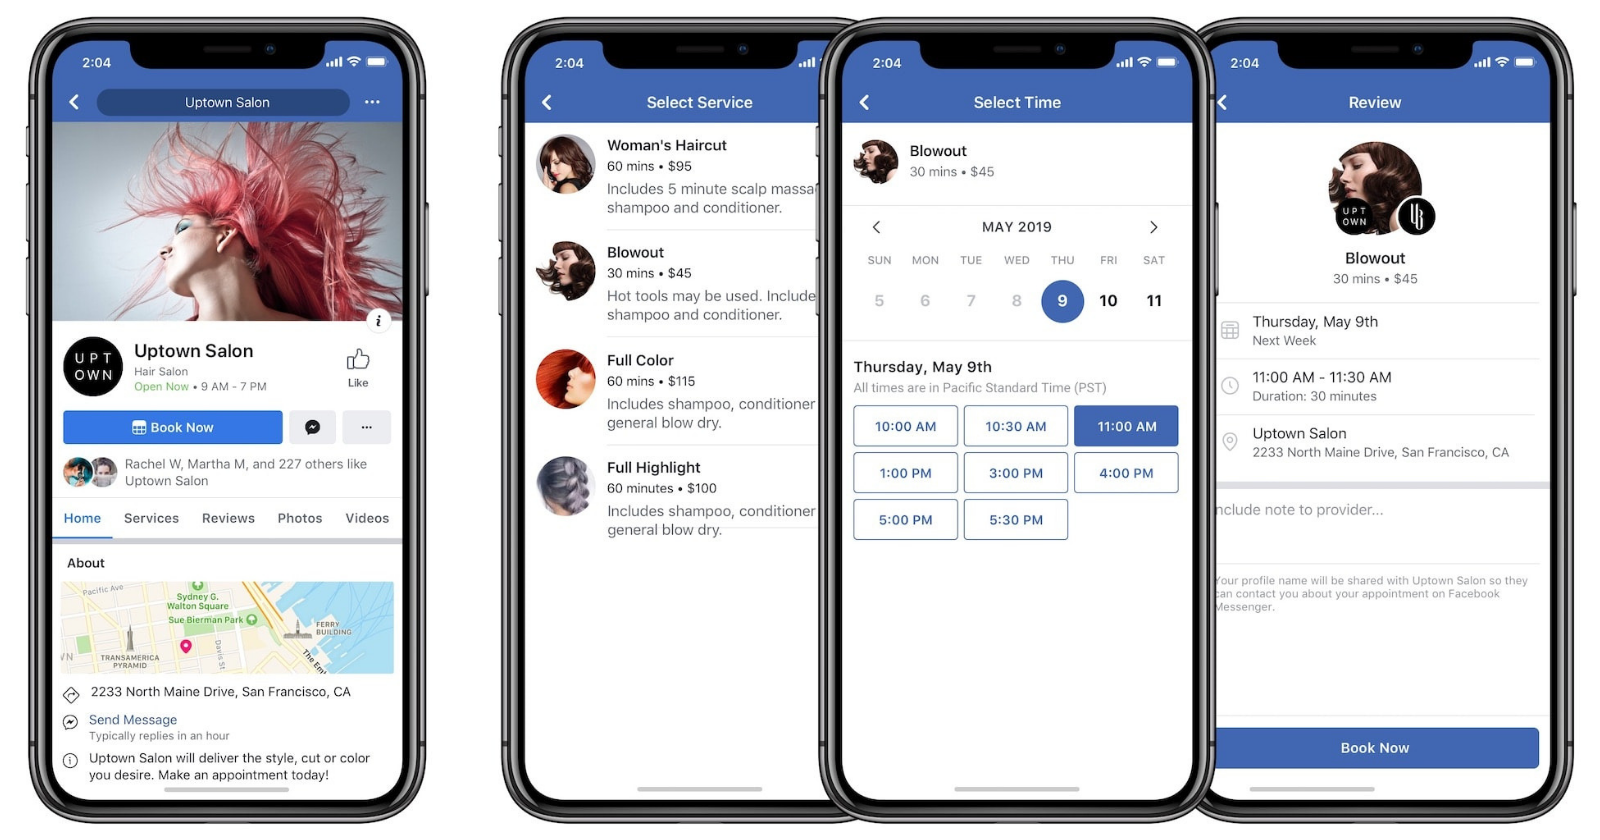 Renditions of Facebook for business for mobile interfaces